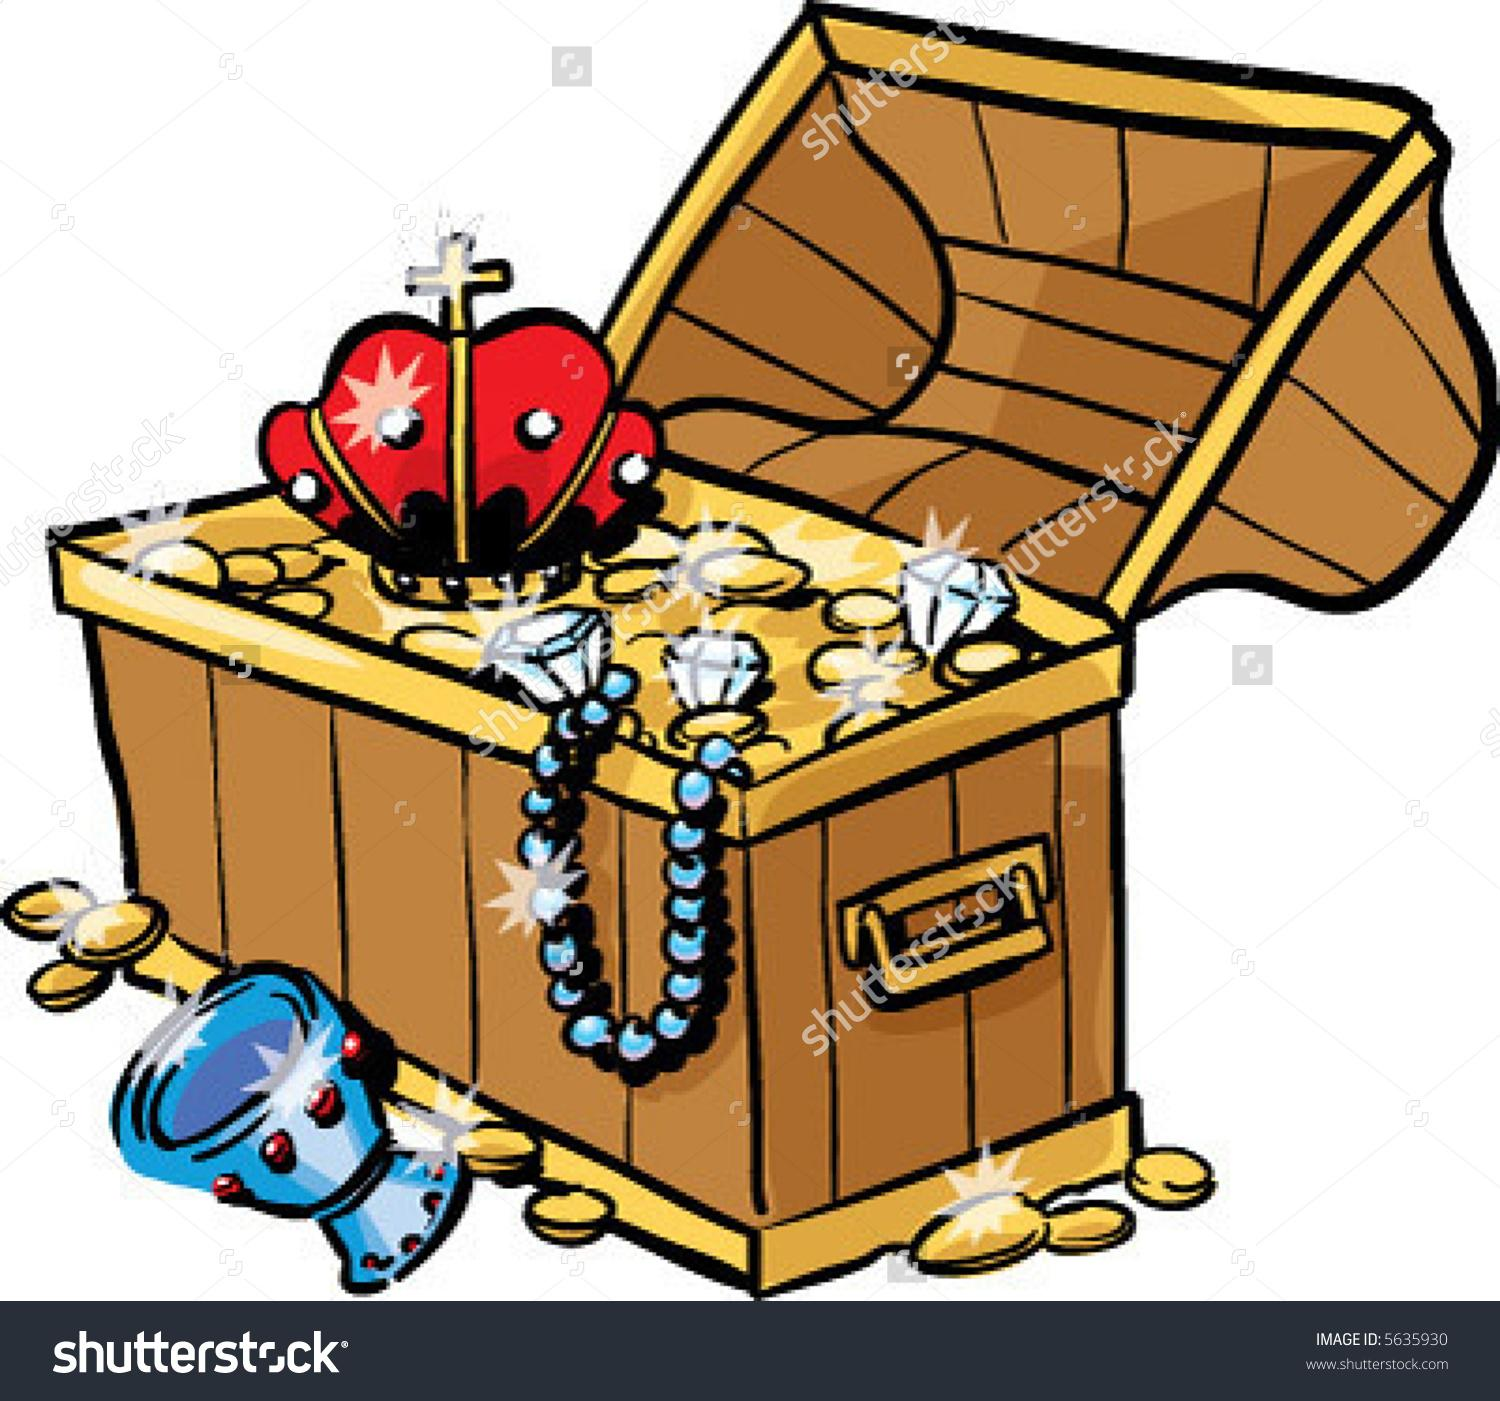 Images: Empty Treasure Chest Clip Art.